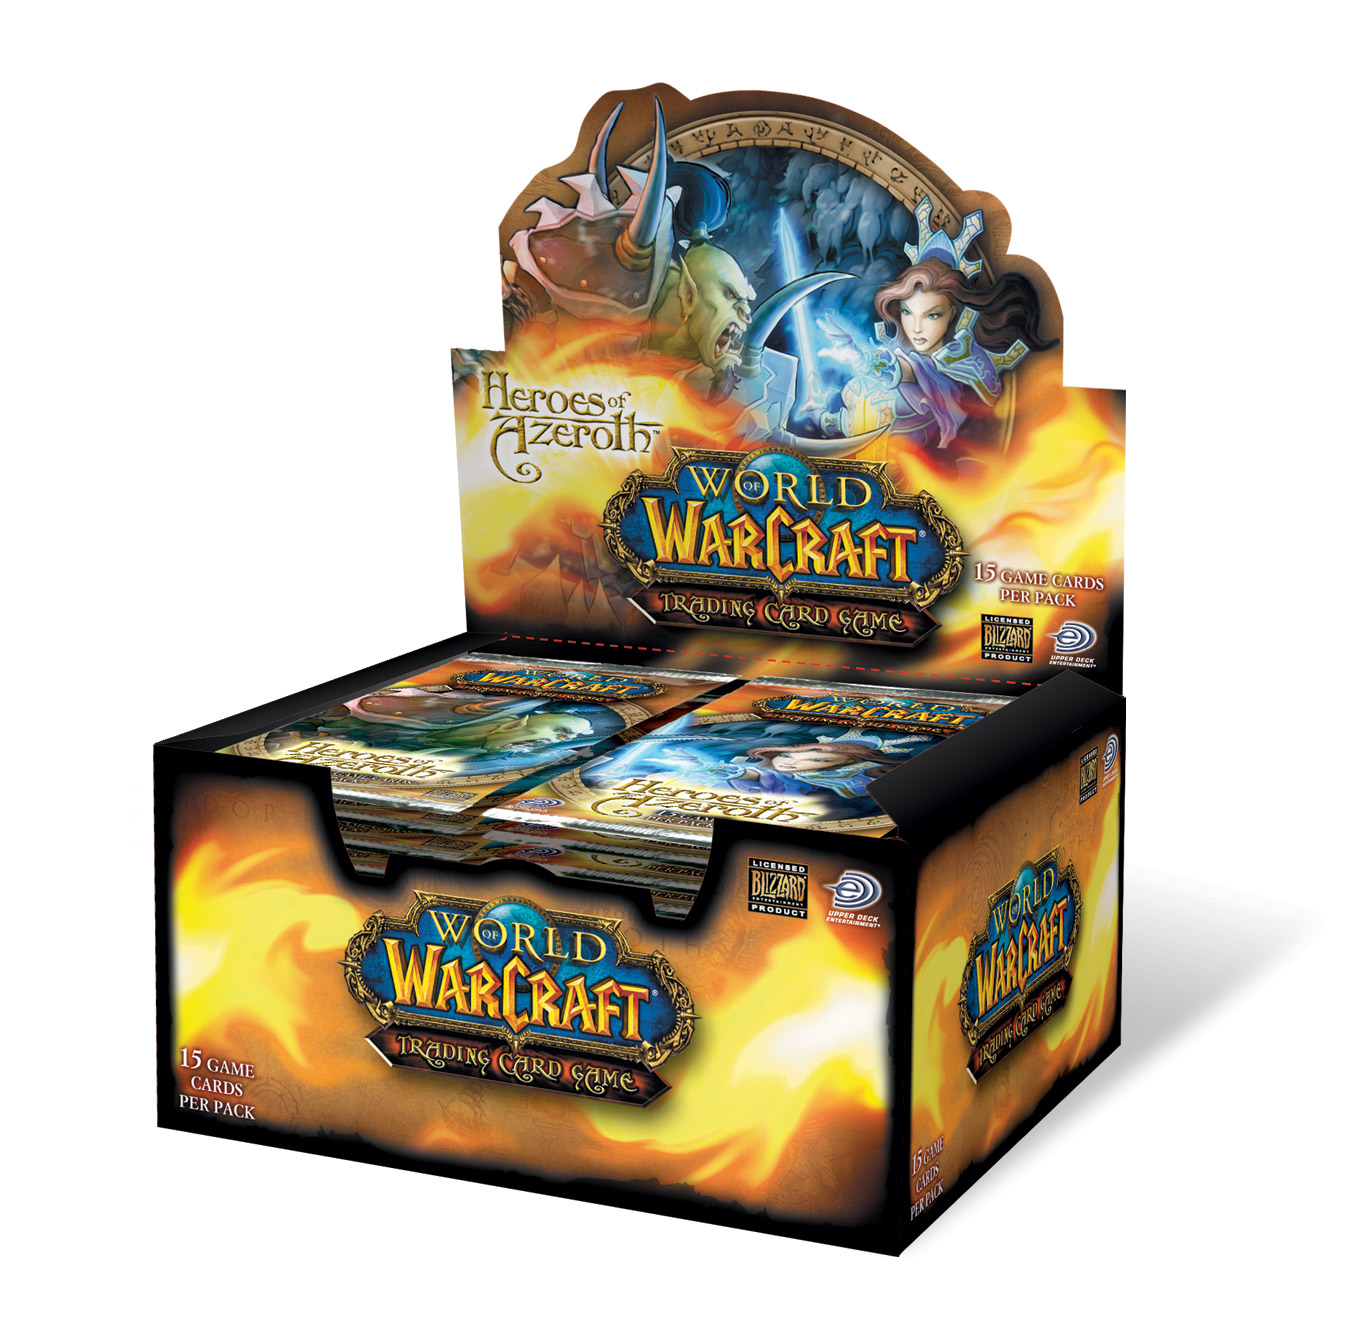 Pack de boosters du jeu de cartes à collectionner World of Warcraft.